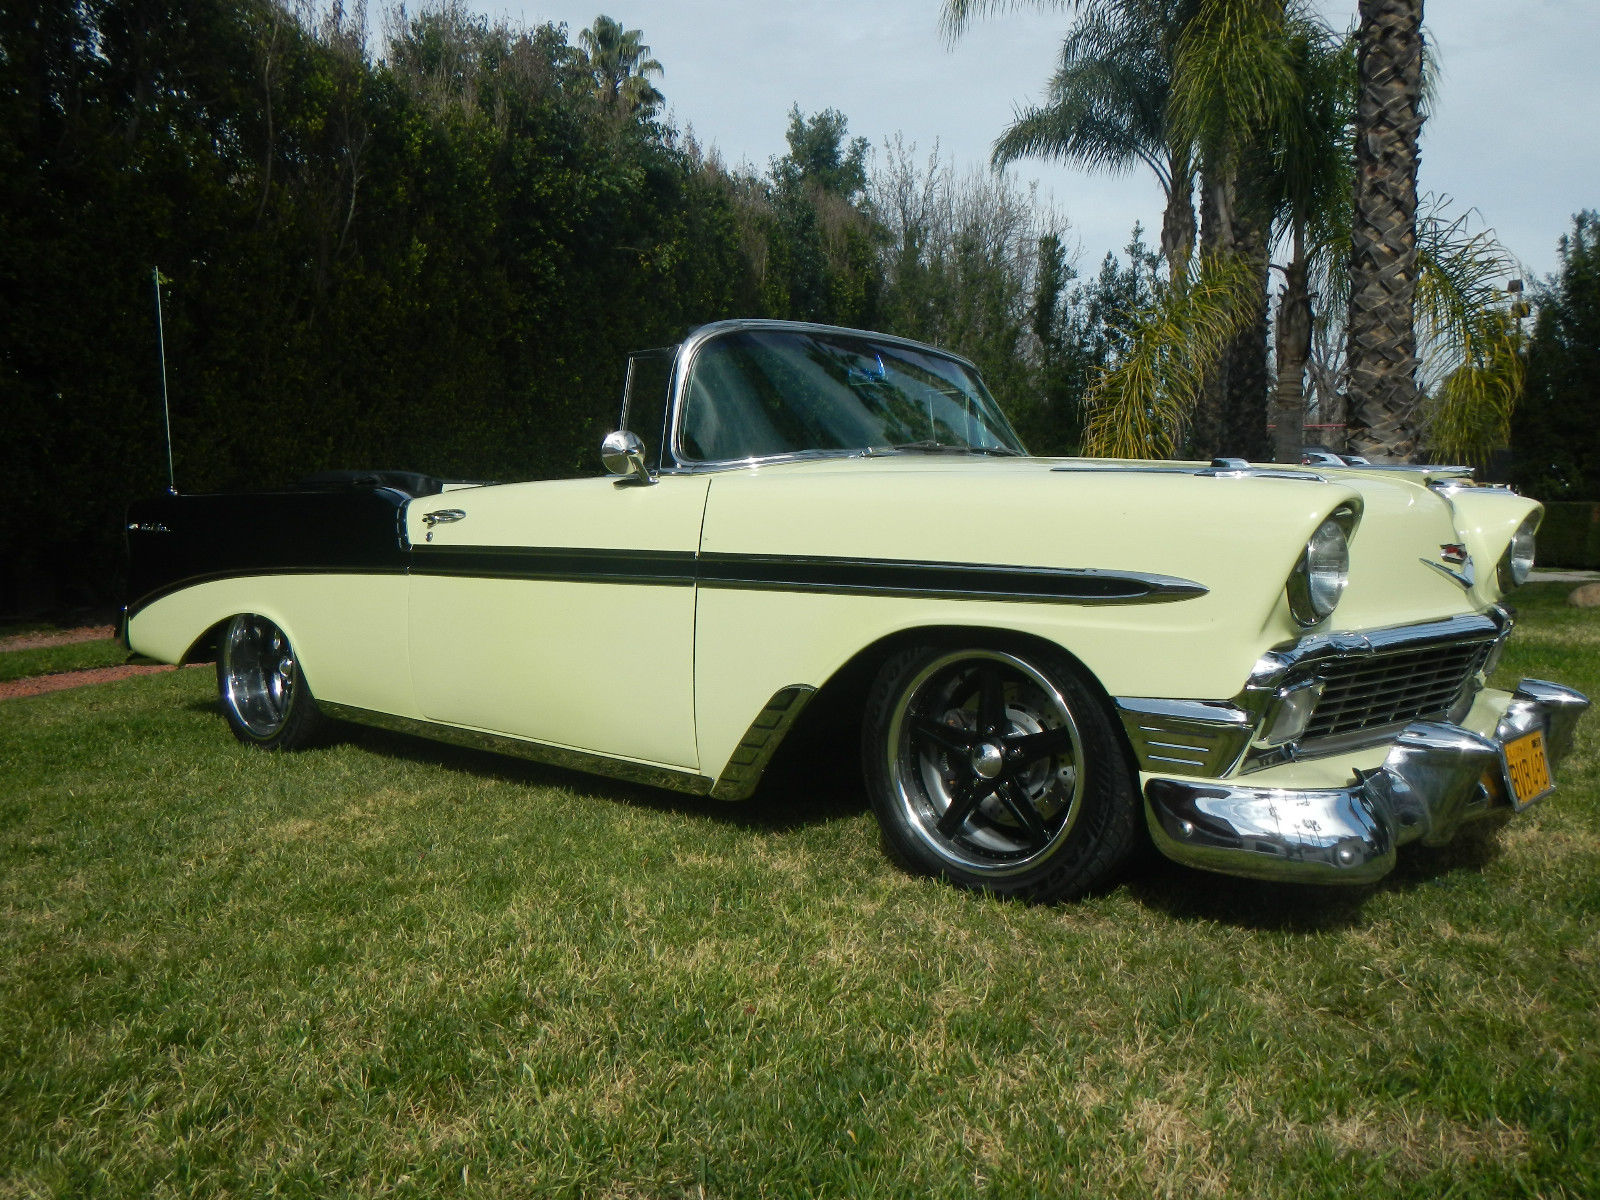 1956 chevrolet bel air convertible for sale - 1956 Chevrolet Bel Air 150 210